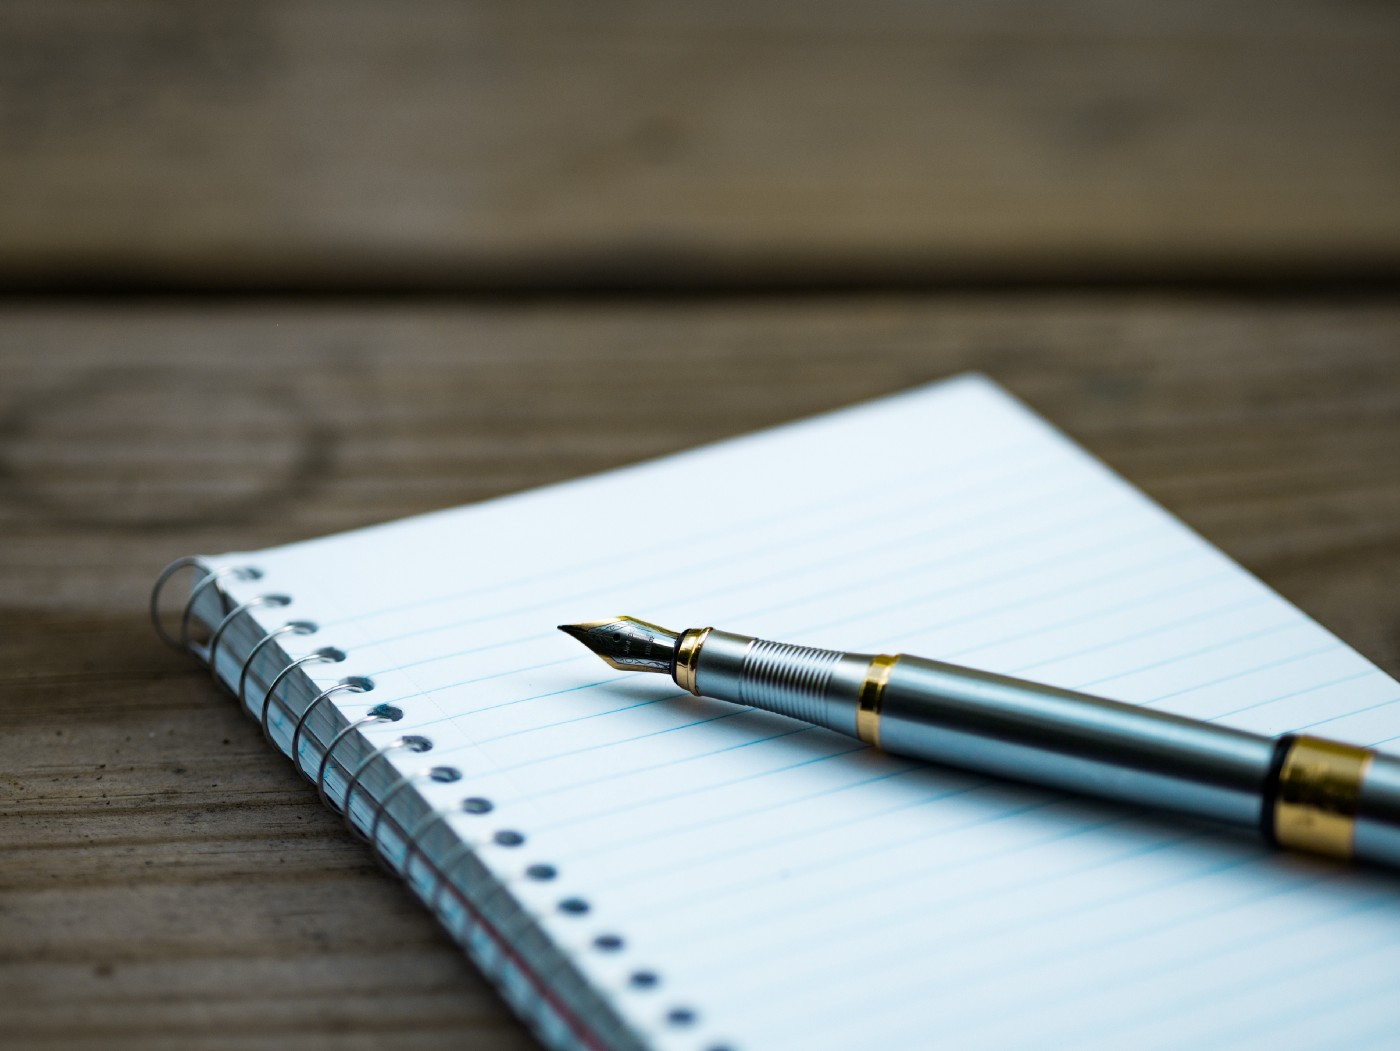 A pen on a writing pad.